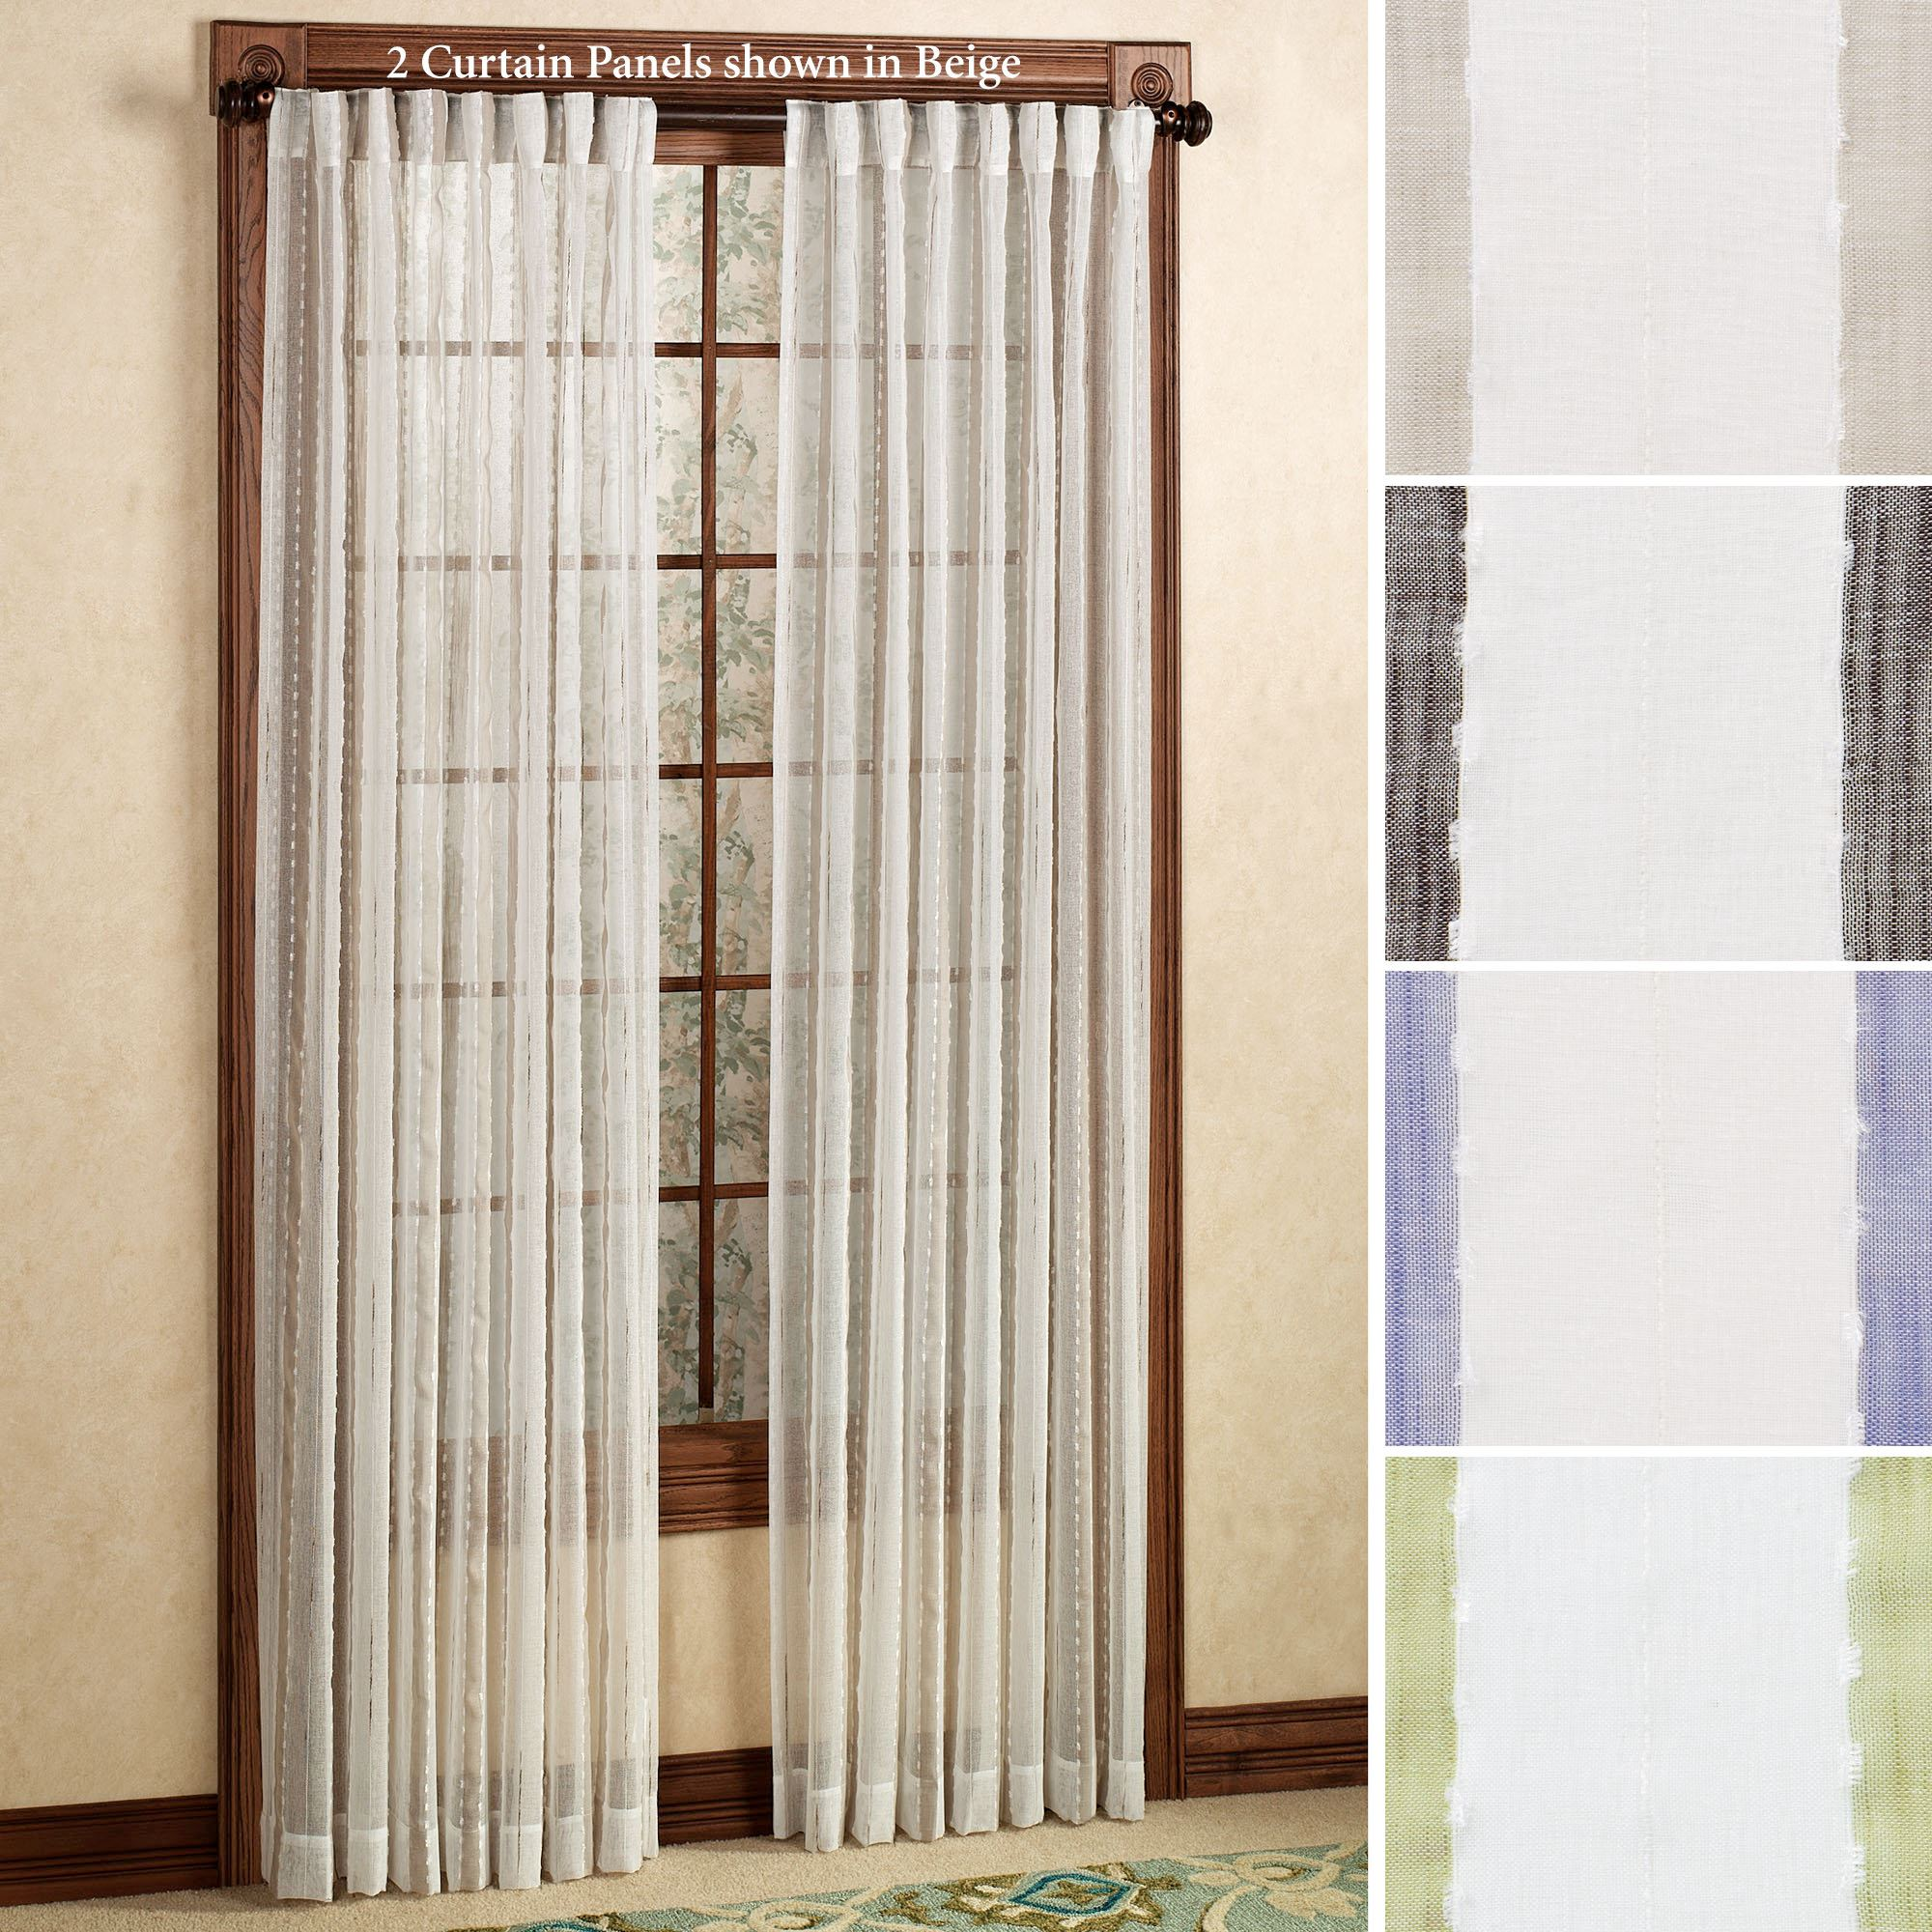 white panel backtab lucerne pair home shipping free back product ricardo lucrene green pairs today gold tab pleat wanda garden overstock curtain drapes